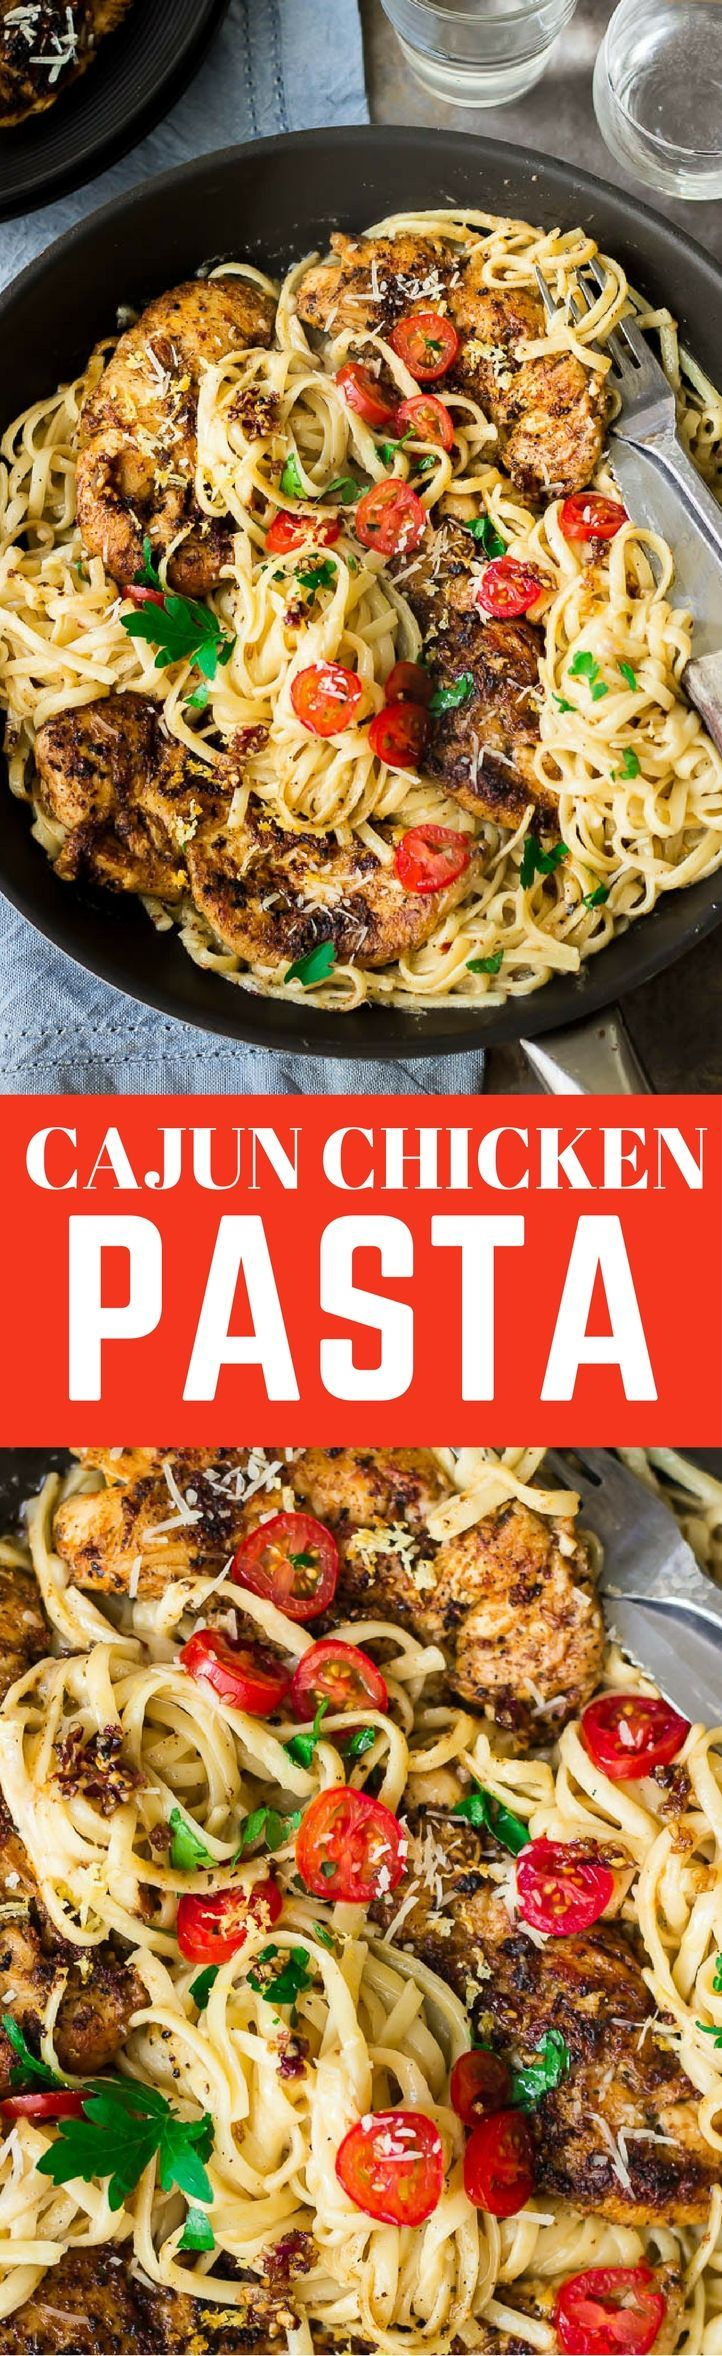 Delicious spicy creamy cajun chicken pasta which cooks in only 20 minutes, with a creamy rich alfredo sauce. An easy and quick restaurant-quality meal in the comfort of your own home.#cajunpasta #pasta #pastarecipes